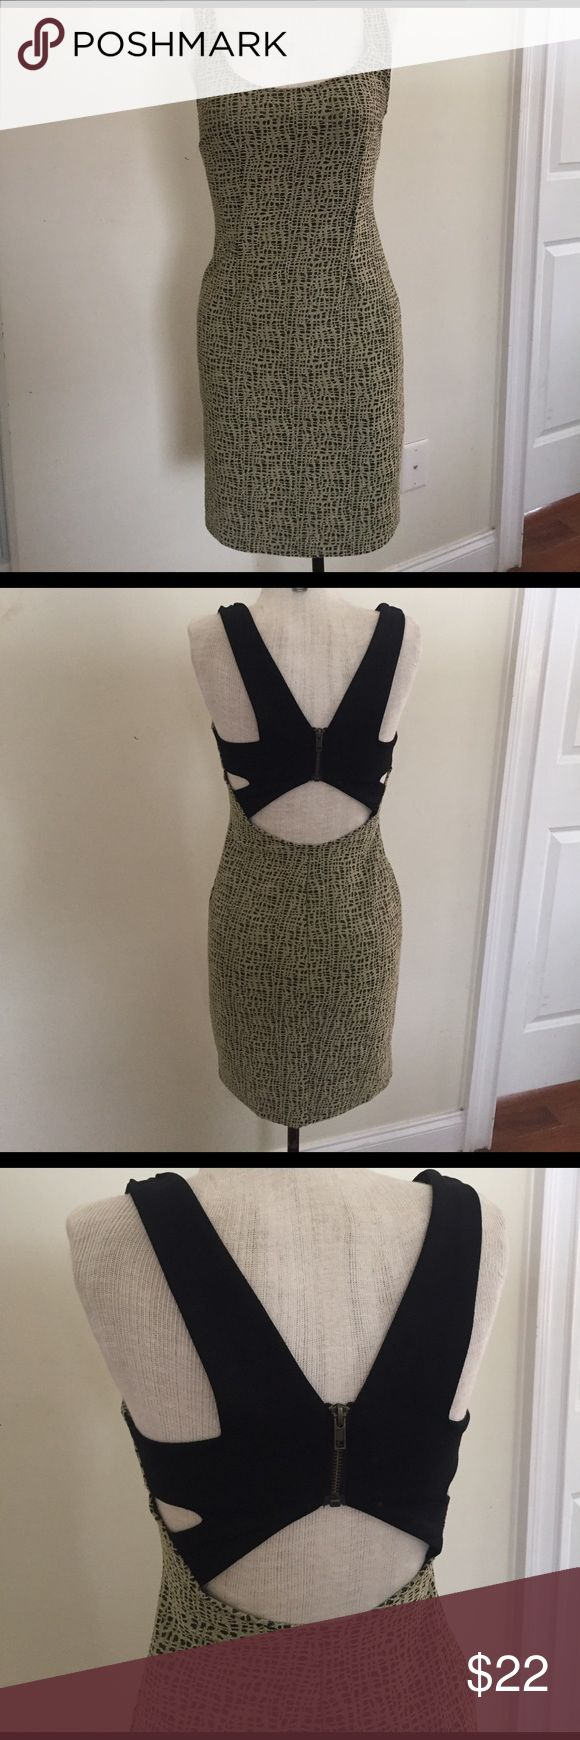 Patterned gold dress with cut out and zipper back Fun sparkly gold patterned dress with black cutout and zipper detail back. short and sexy size tag is ripped but it definitely fits as an xs Dresses Mini